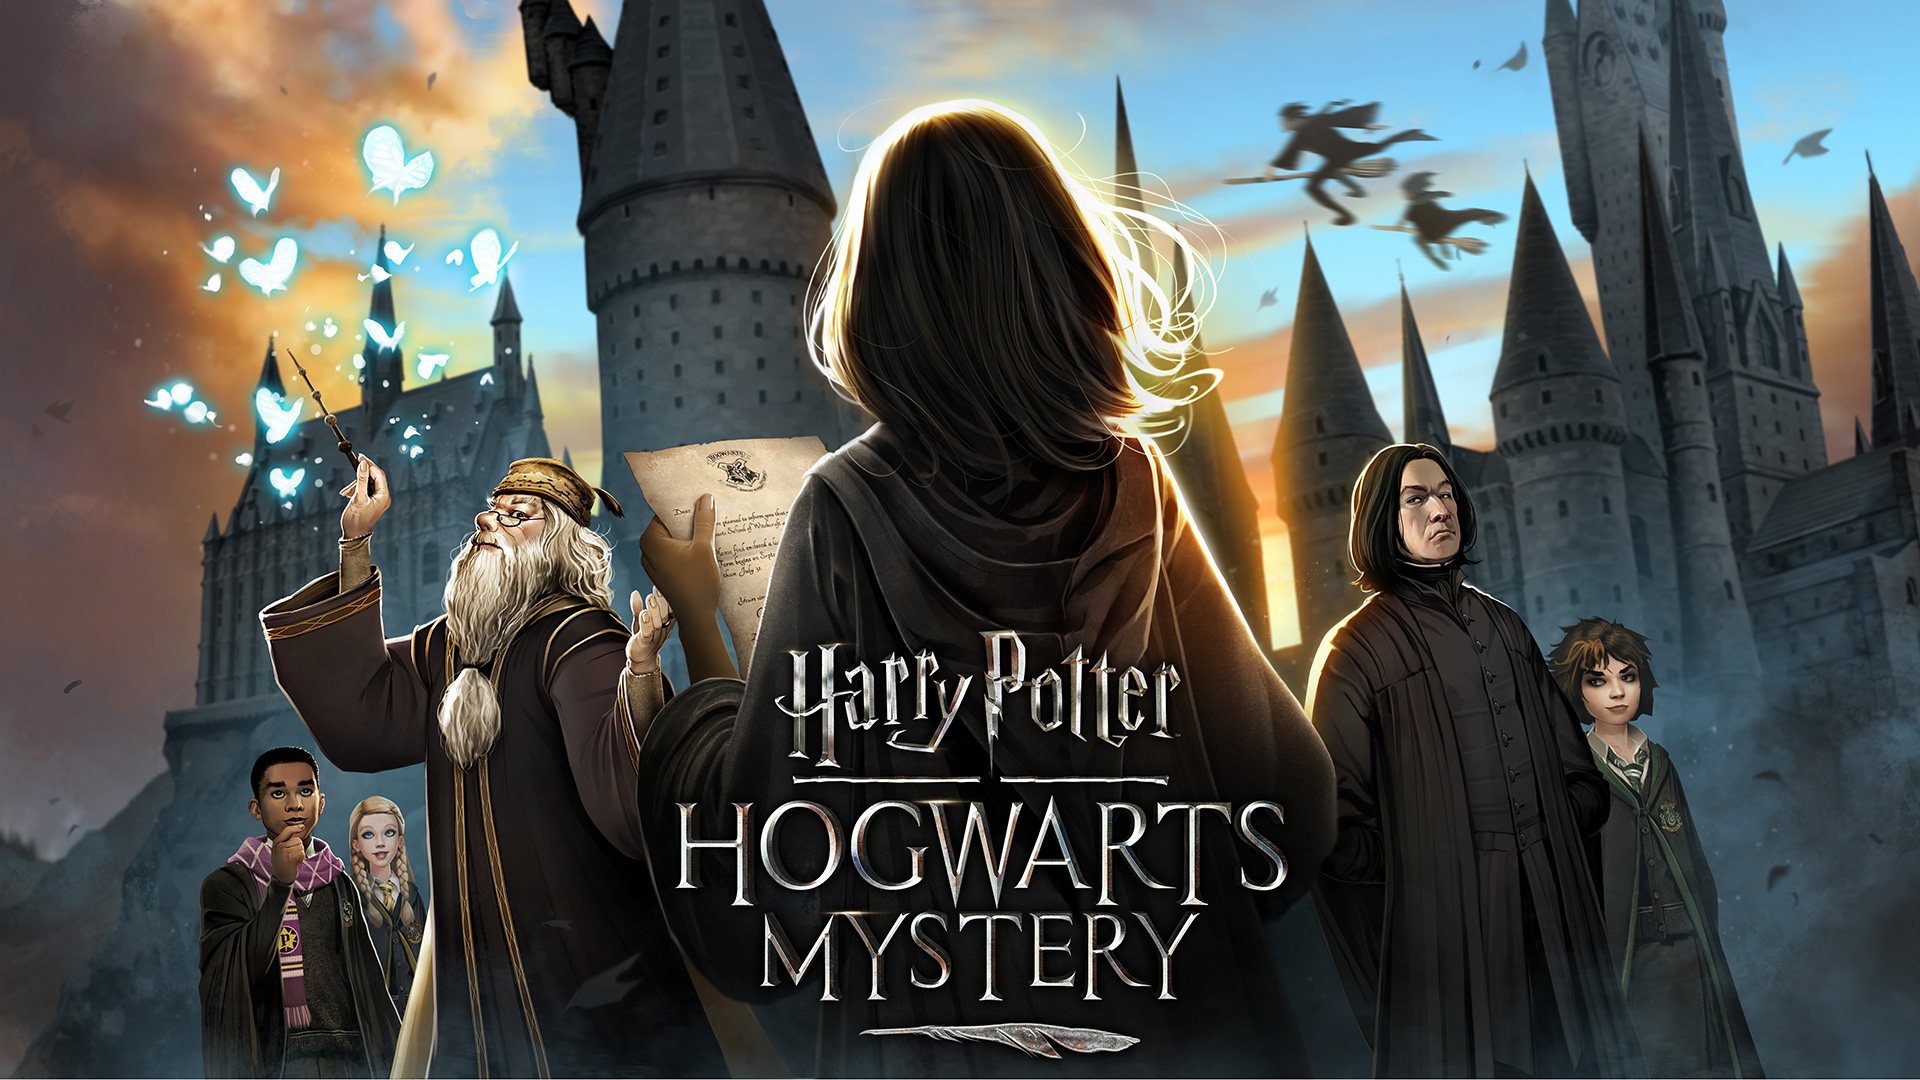 Harry Potter Hogwarts Mystery Patronus How To Get Patronus With Tied Attributes